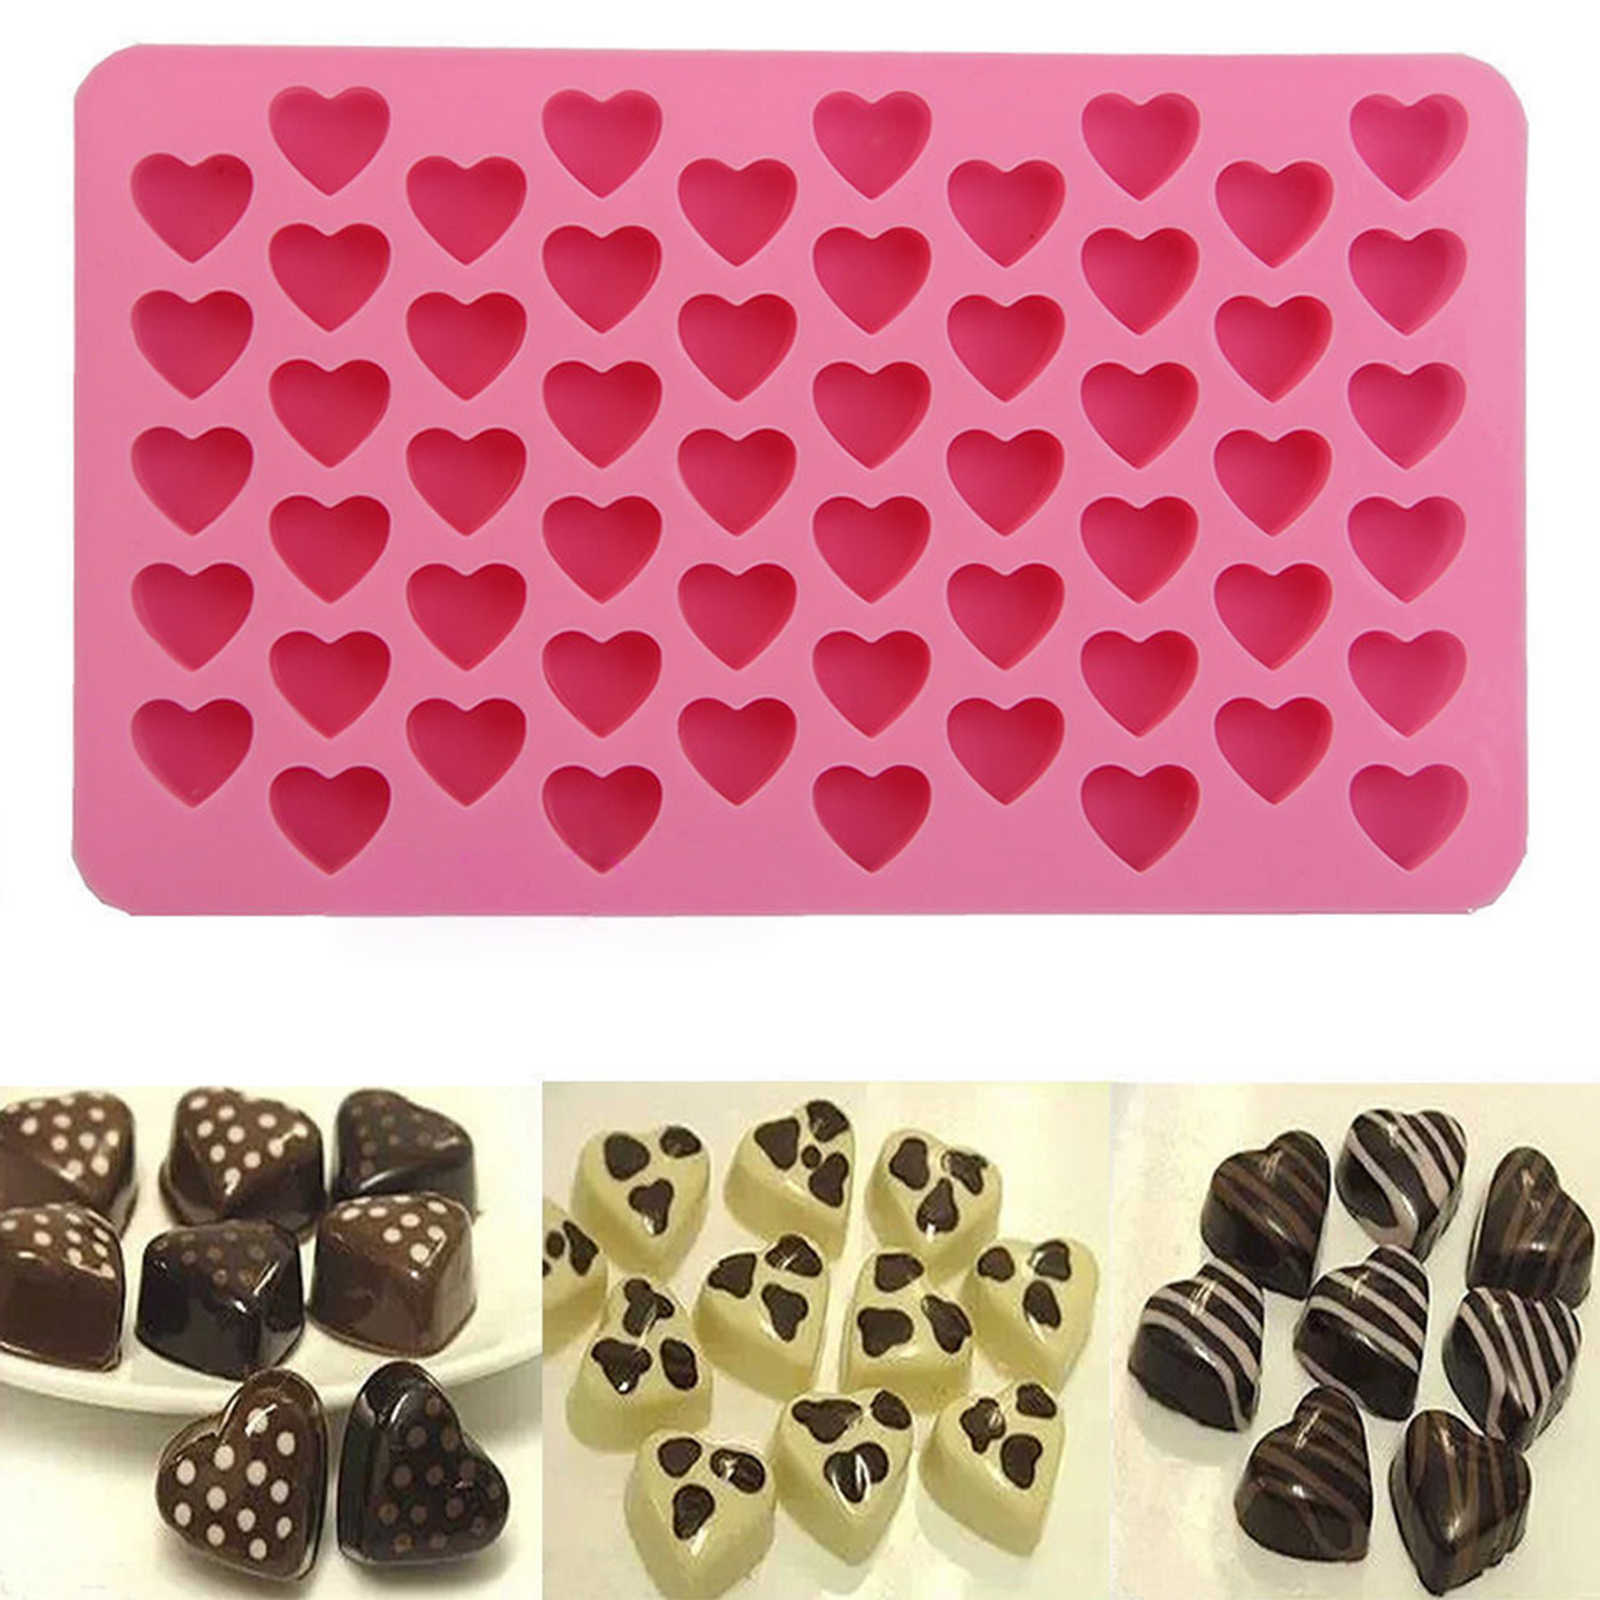 Silicone Mold Cute Mini Heart Shape Silicone Ice Cube Chocolate Baking Candy Soap Mold Making Cake Bread Mousse Jelly Chocolate